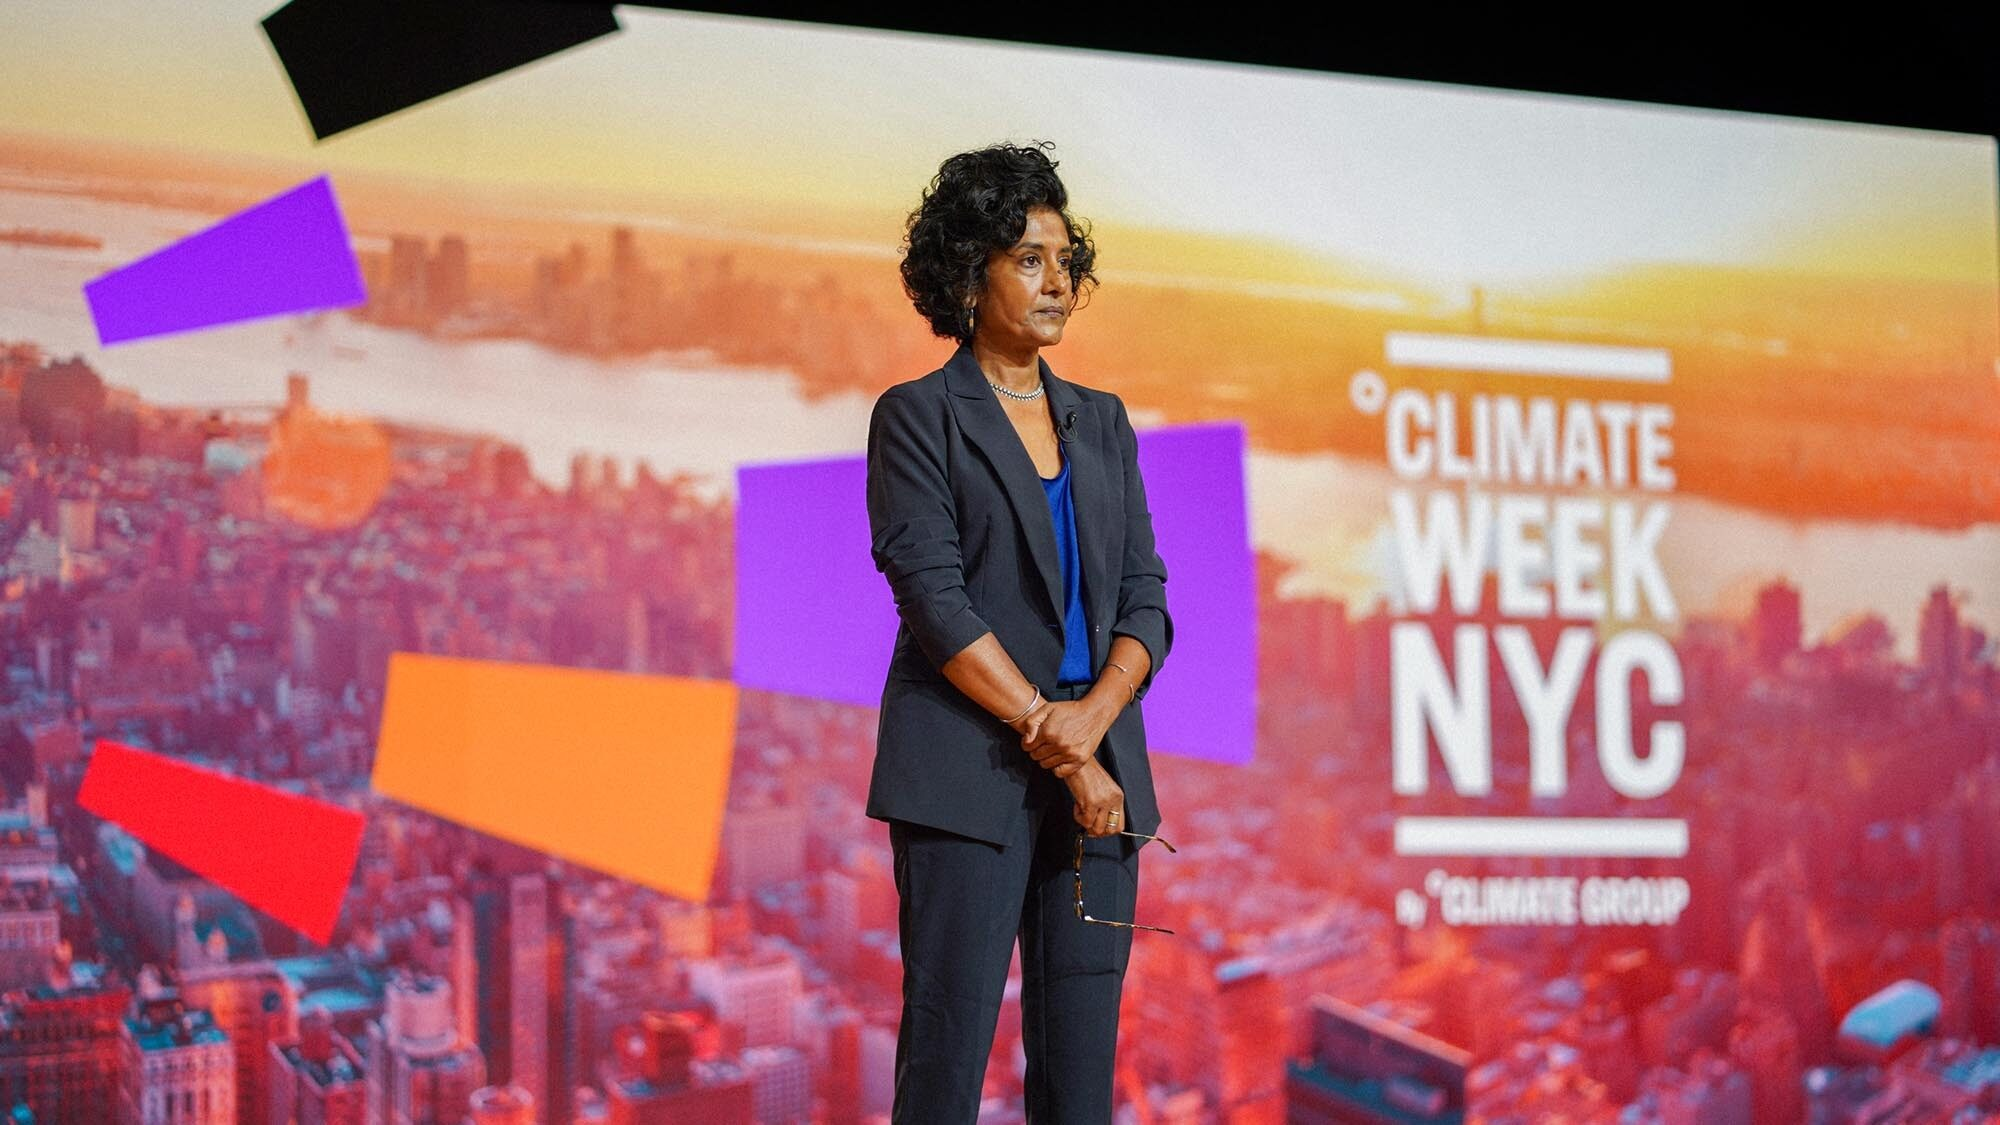 Photo of speaker as Climate Week NYC makes event digital